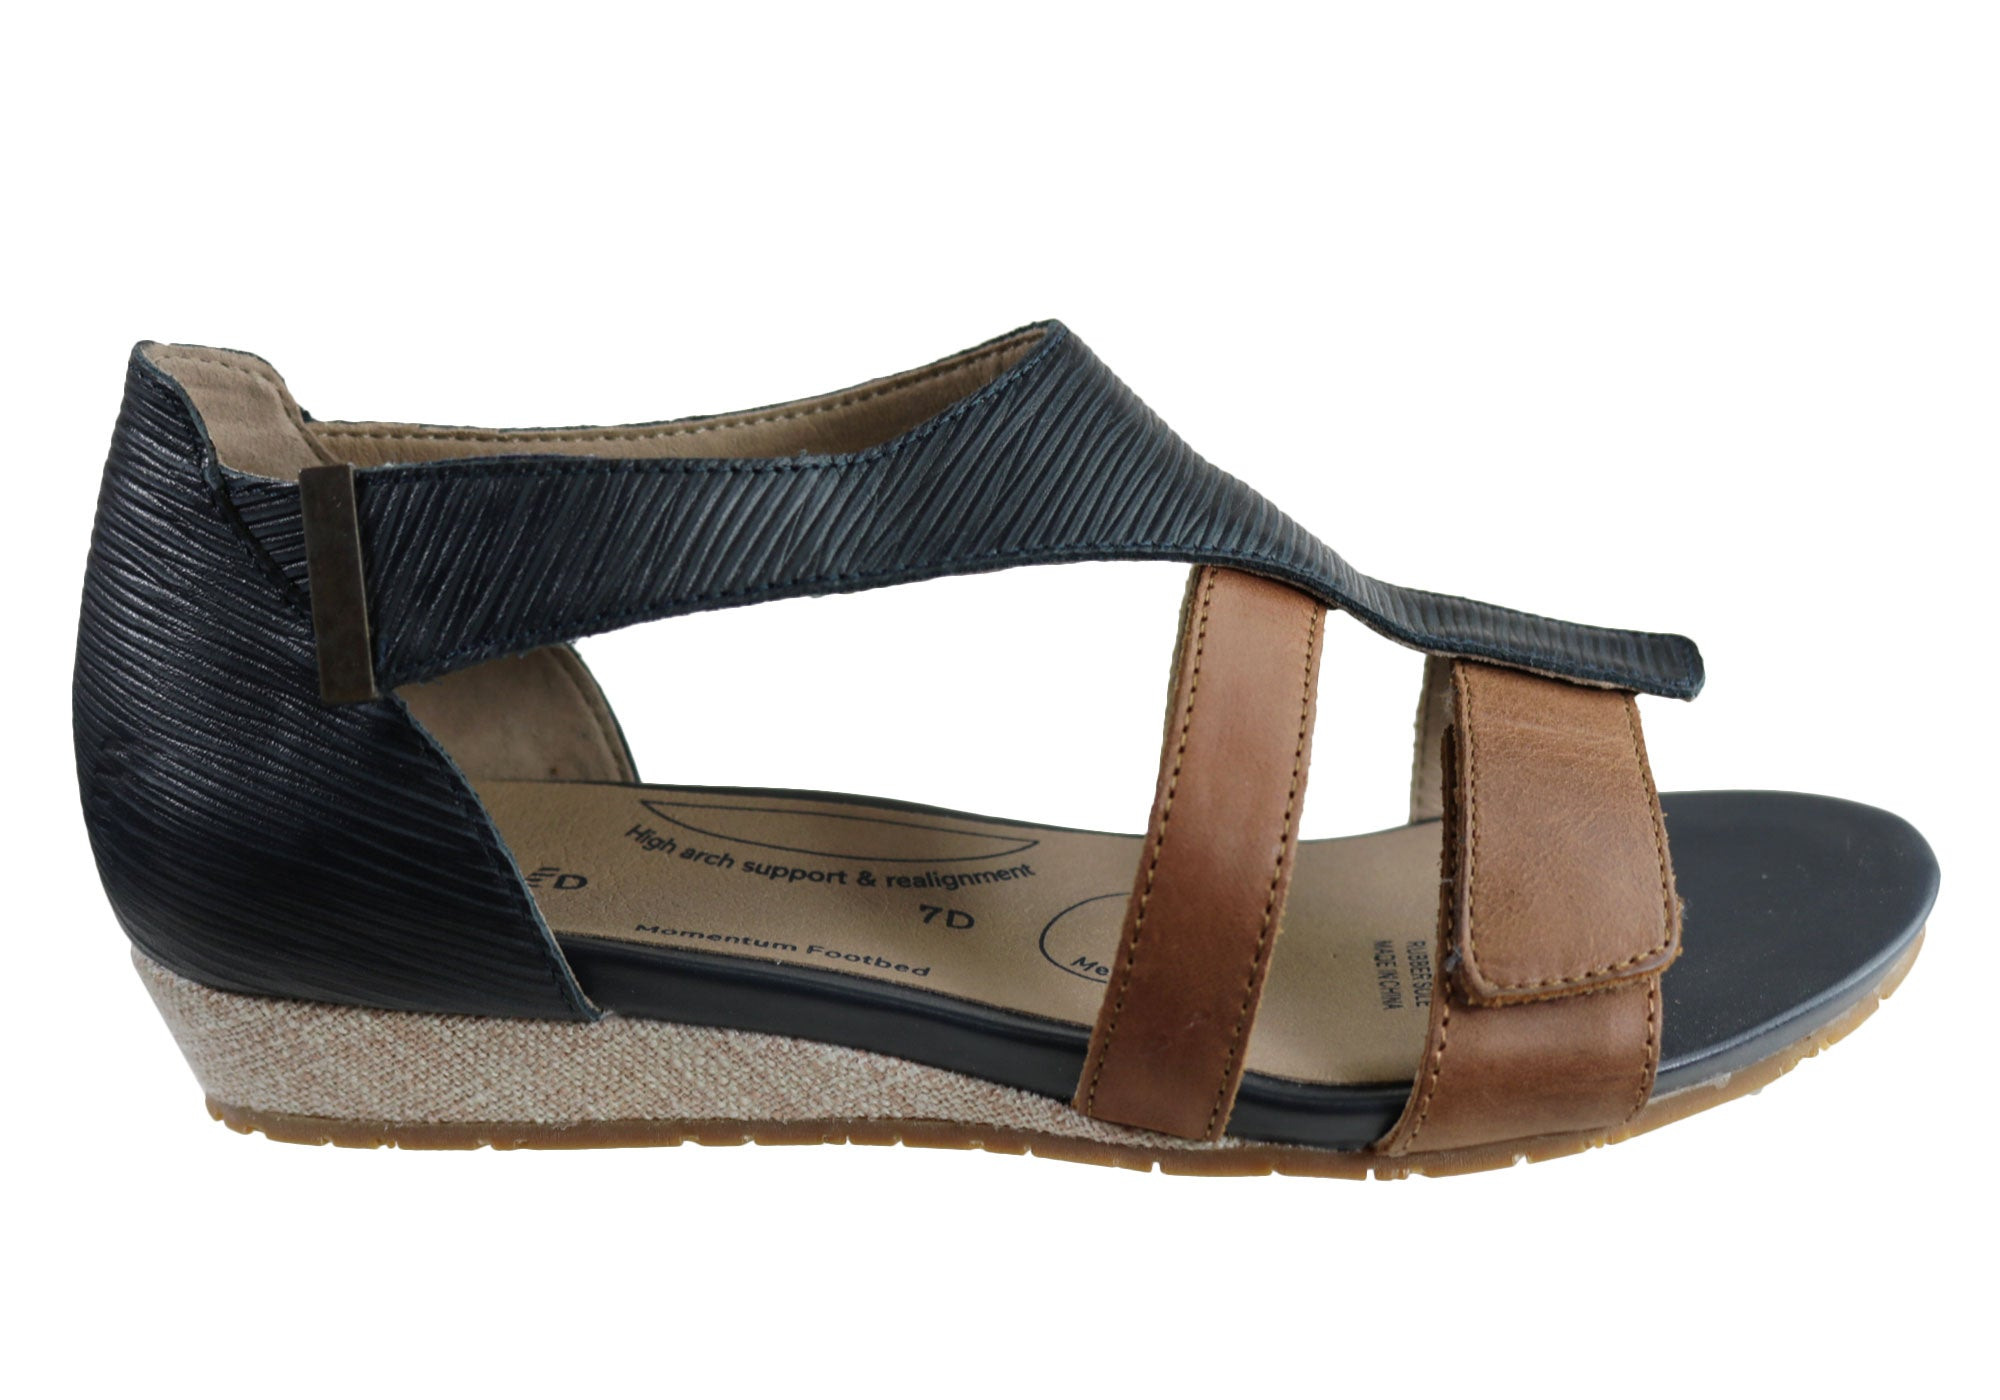 Homyped Faith Womens Supportive Comfortable Wide Fit Low Wedge Sandals